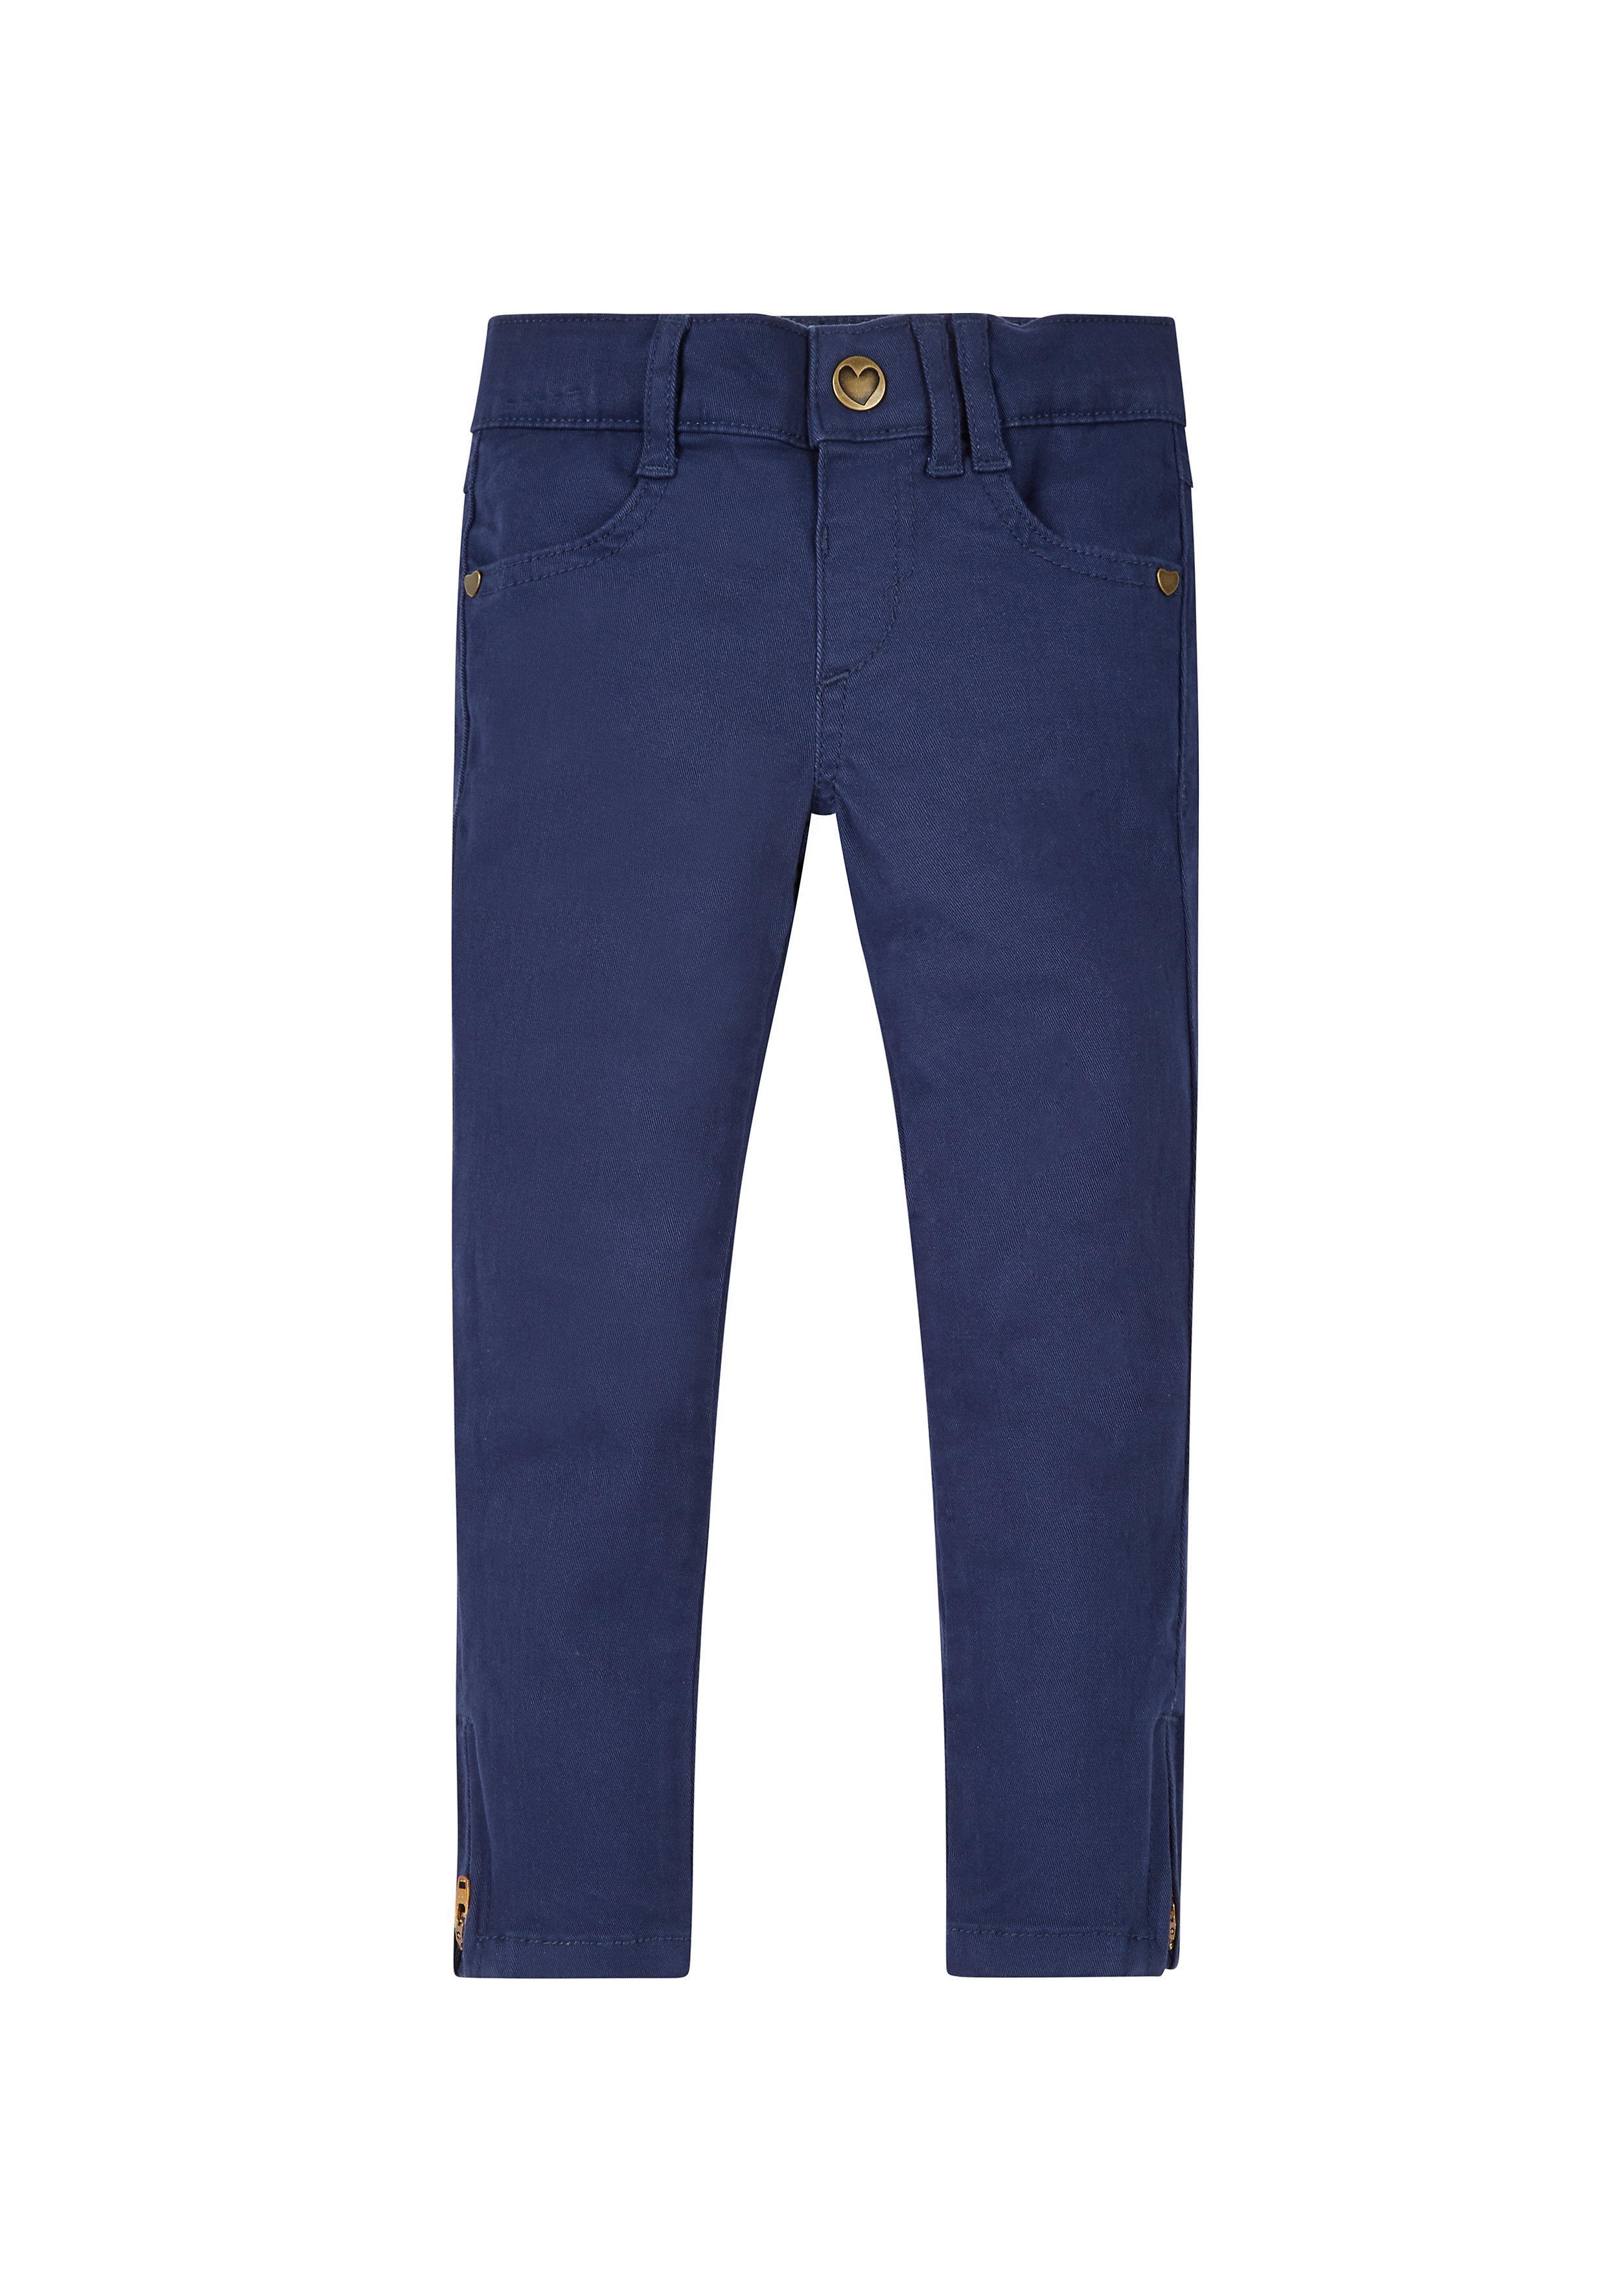 Mothercare | Girls Twill Trousers - Navy